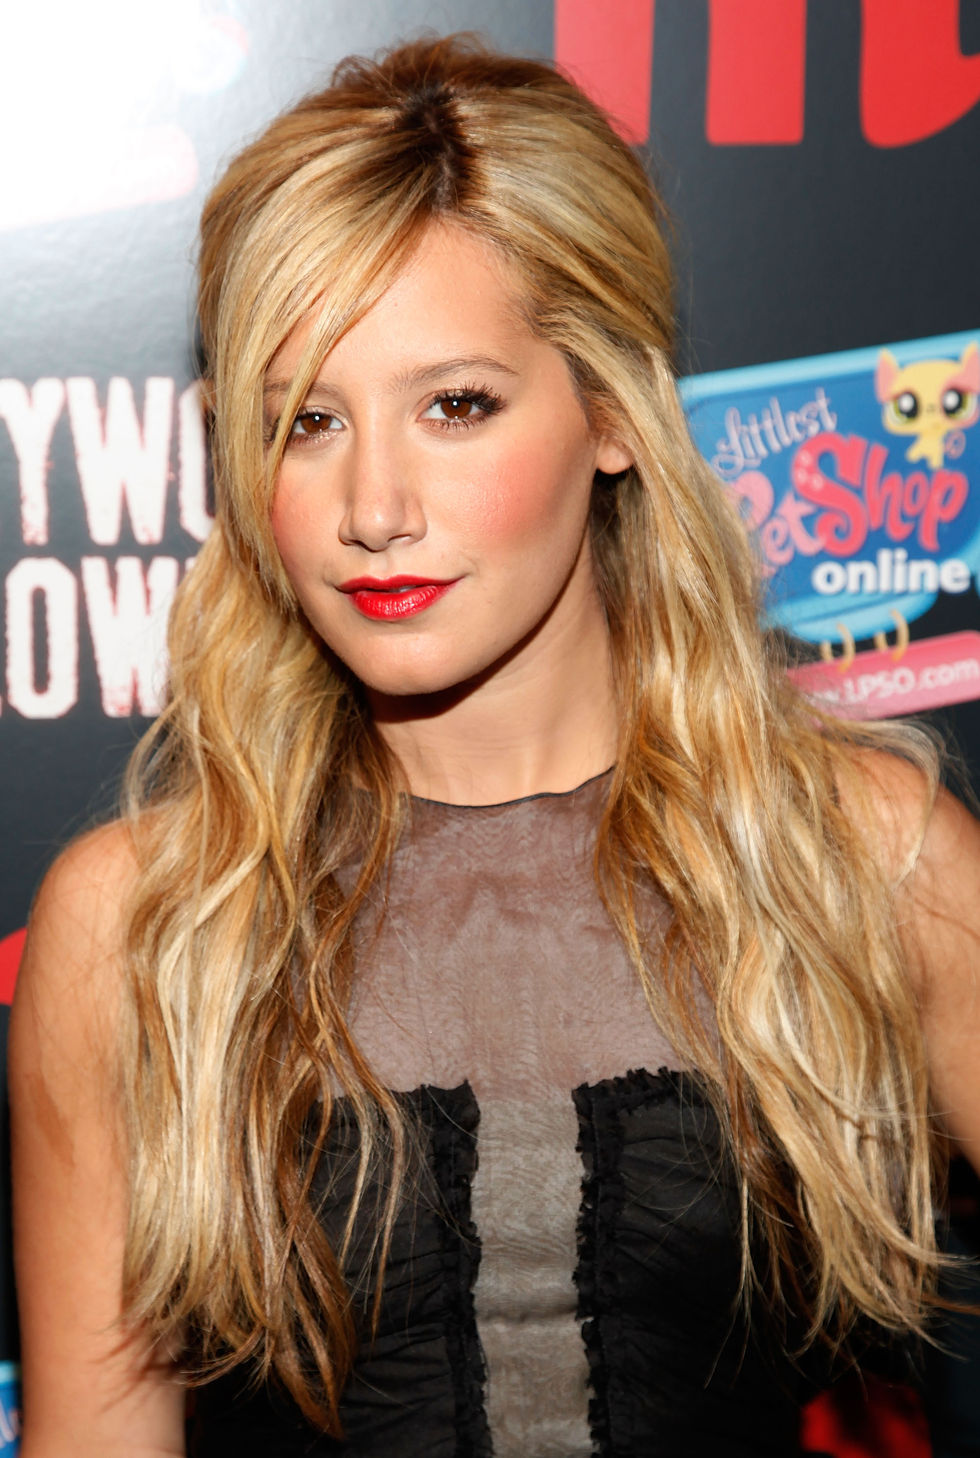 ashley-tisdale-at-m-magazines-2009-hollywood-halloween-event-01